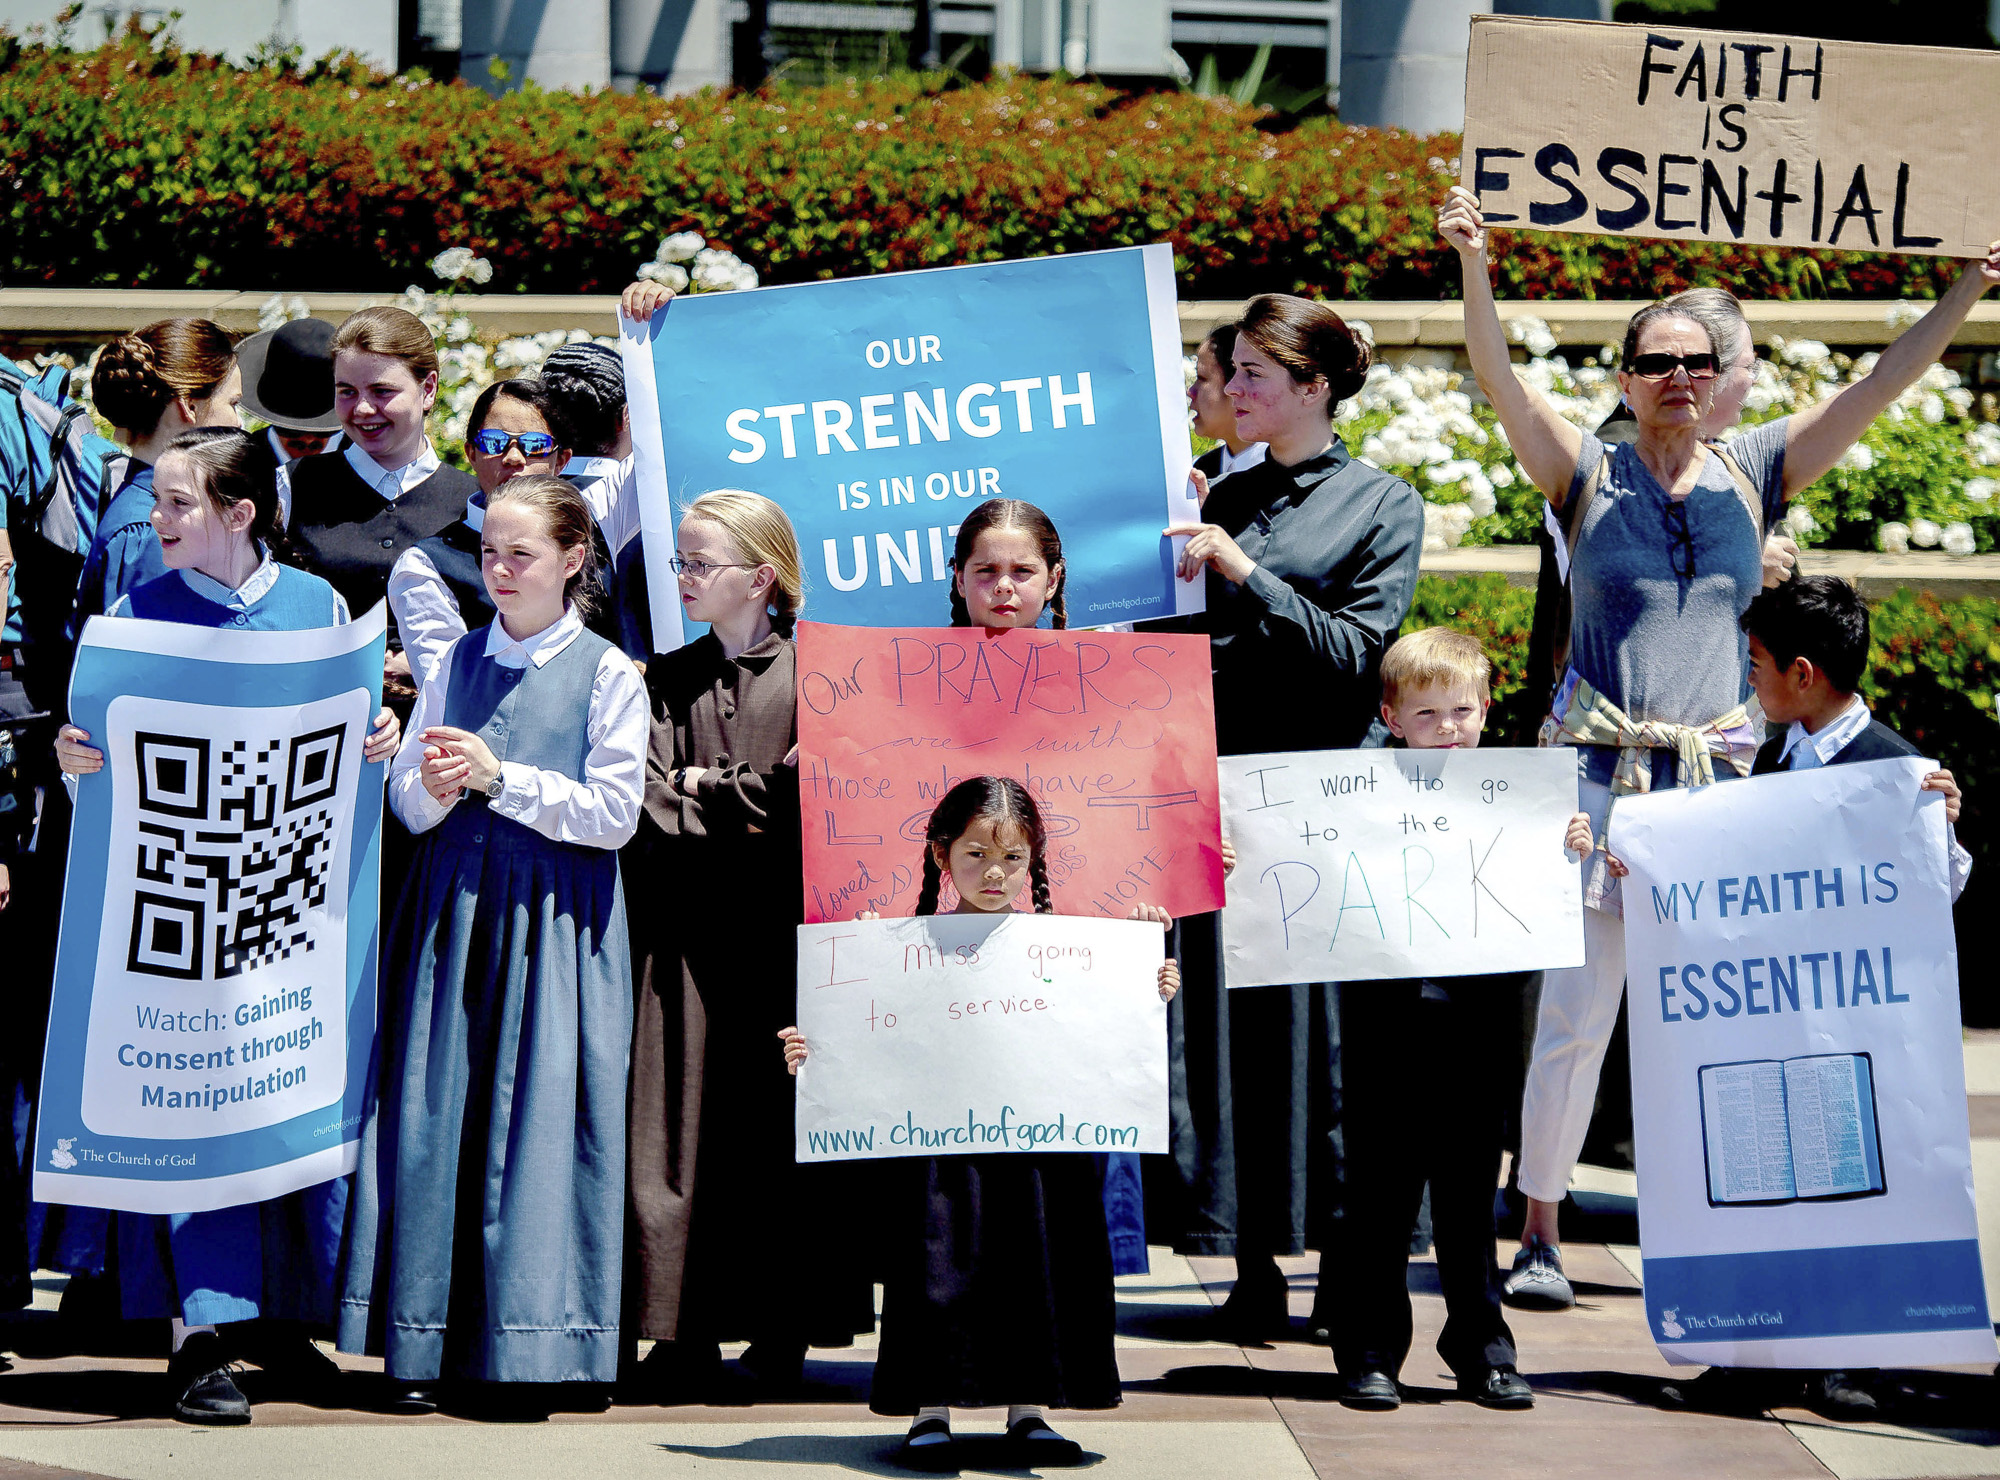 Young members of the Church of God in Rancho Cucamonga demonstrate against California Gov. Gavin Newsom's stay-at-home orders amid the coronavirus outbreak. Newsom has been forced to respond to defiant counties and churches as he slowly lifts restrictions. Photo by Watcher Phomicinda/The Orange County Register via AP